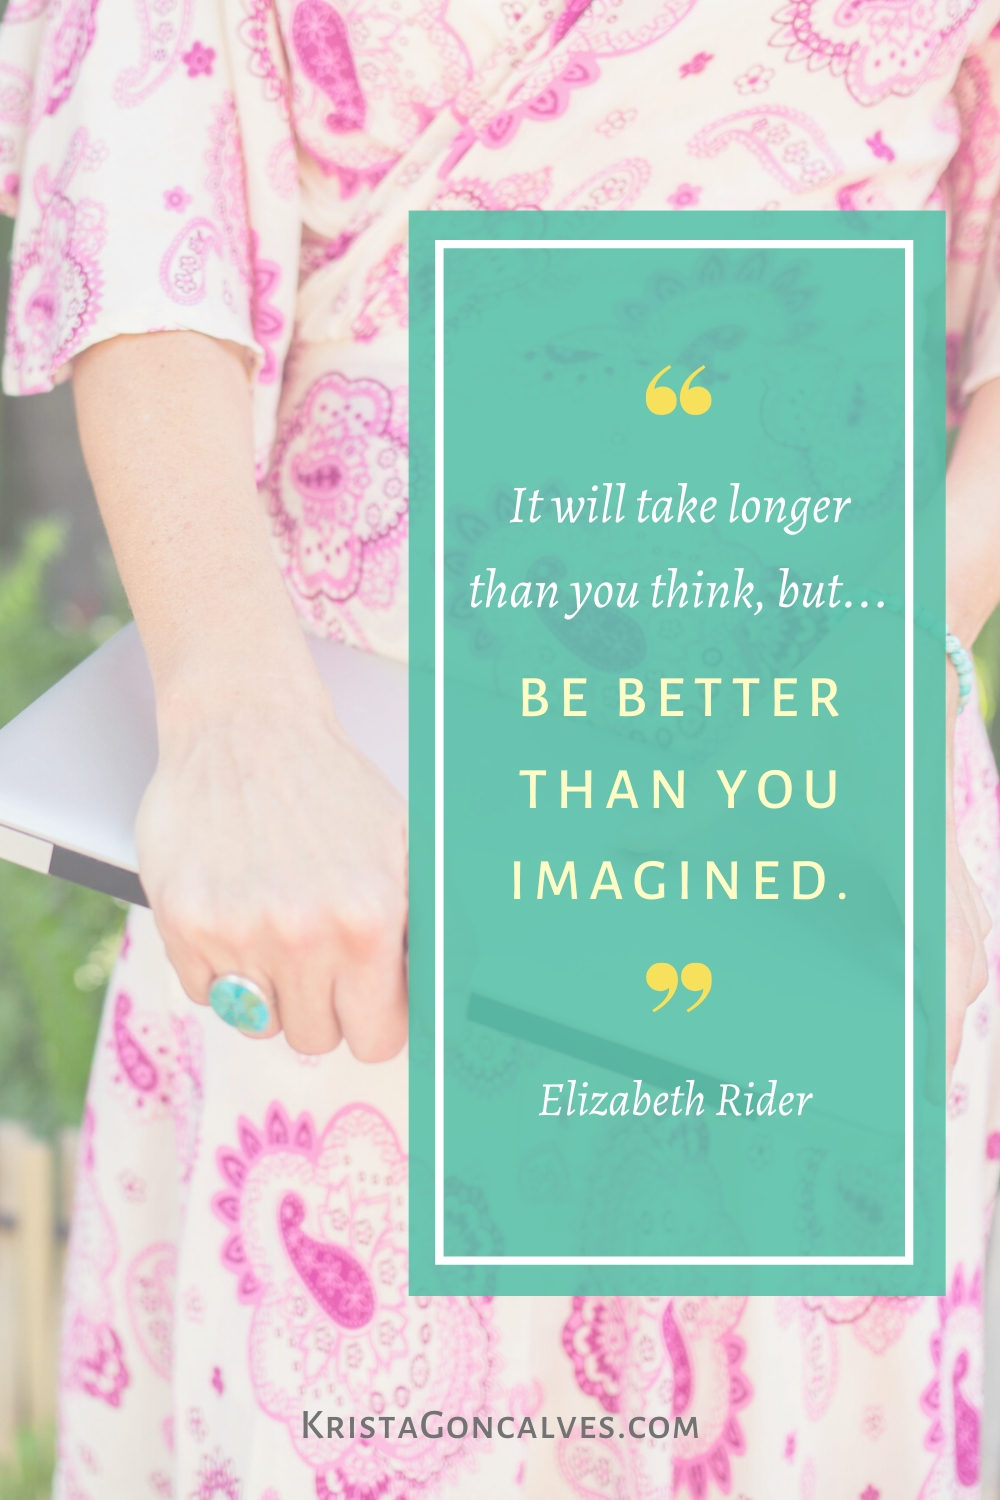 It will take longer than you think, but be better than you imagined | Elizabeth Rider quote | Krista Goncalves Co.